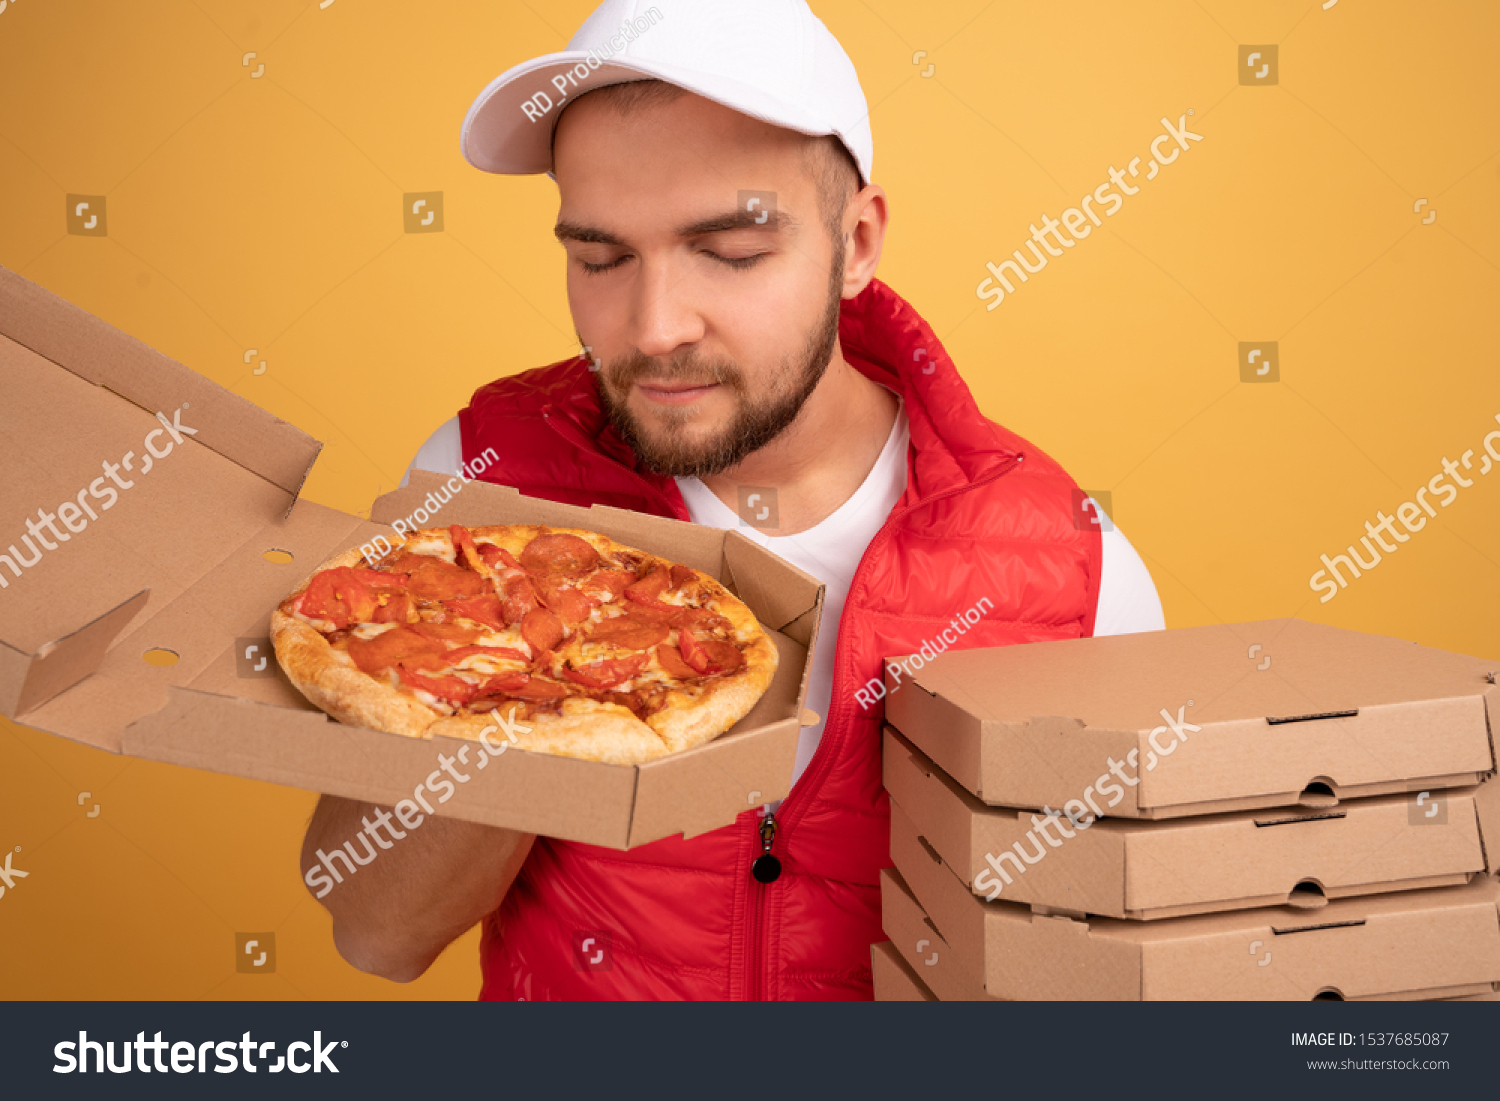 stock-photo-cheerful-pizza-delivery-man-stands-with-carton-boxes-sniffs-delicious-and-fragrant-pizza-wears-1537685087.jpg